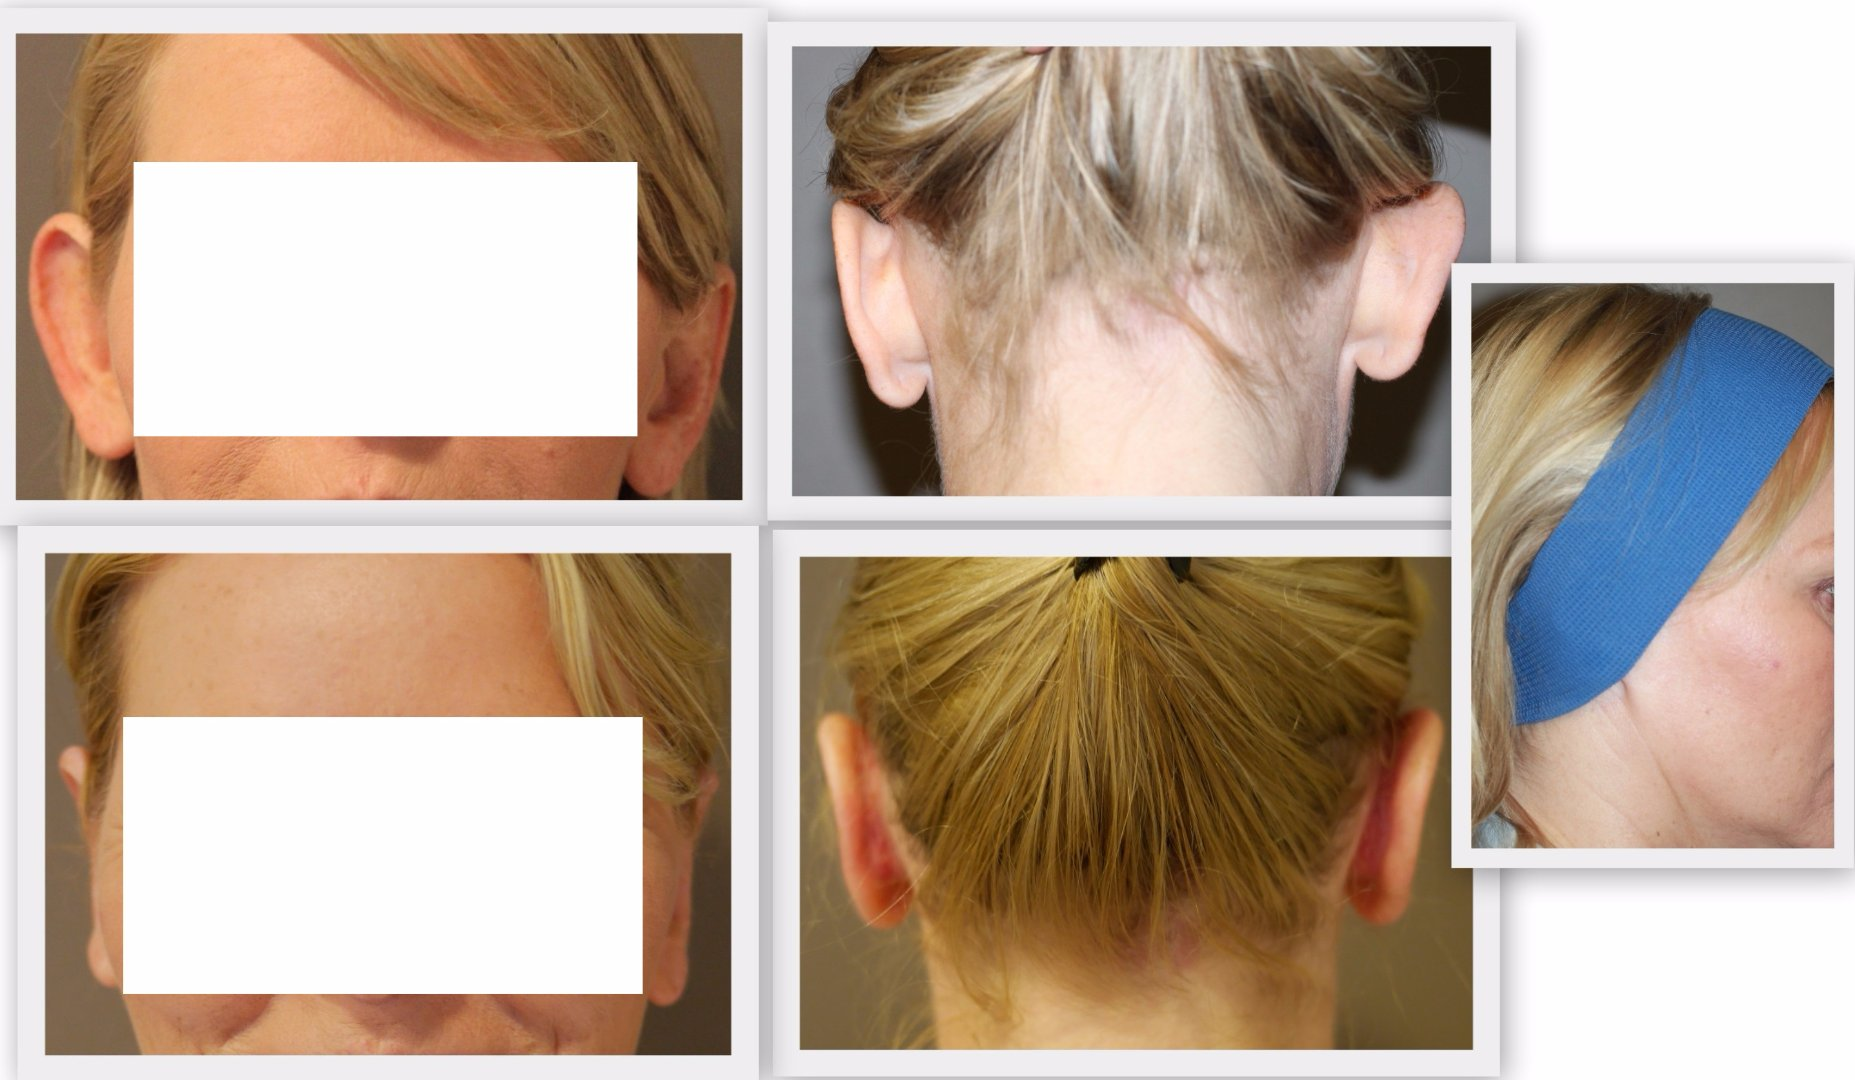 Ear correction Dr. Nelissen - Global Care Clinic